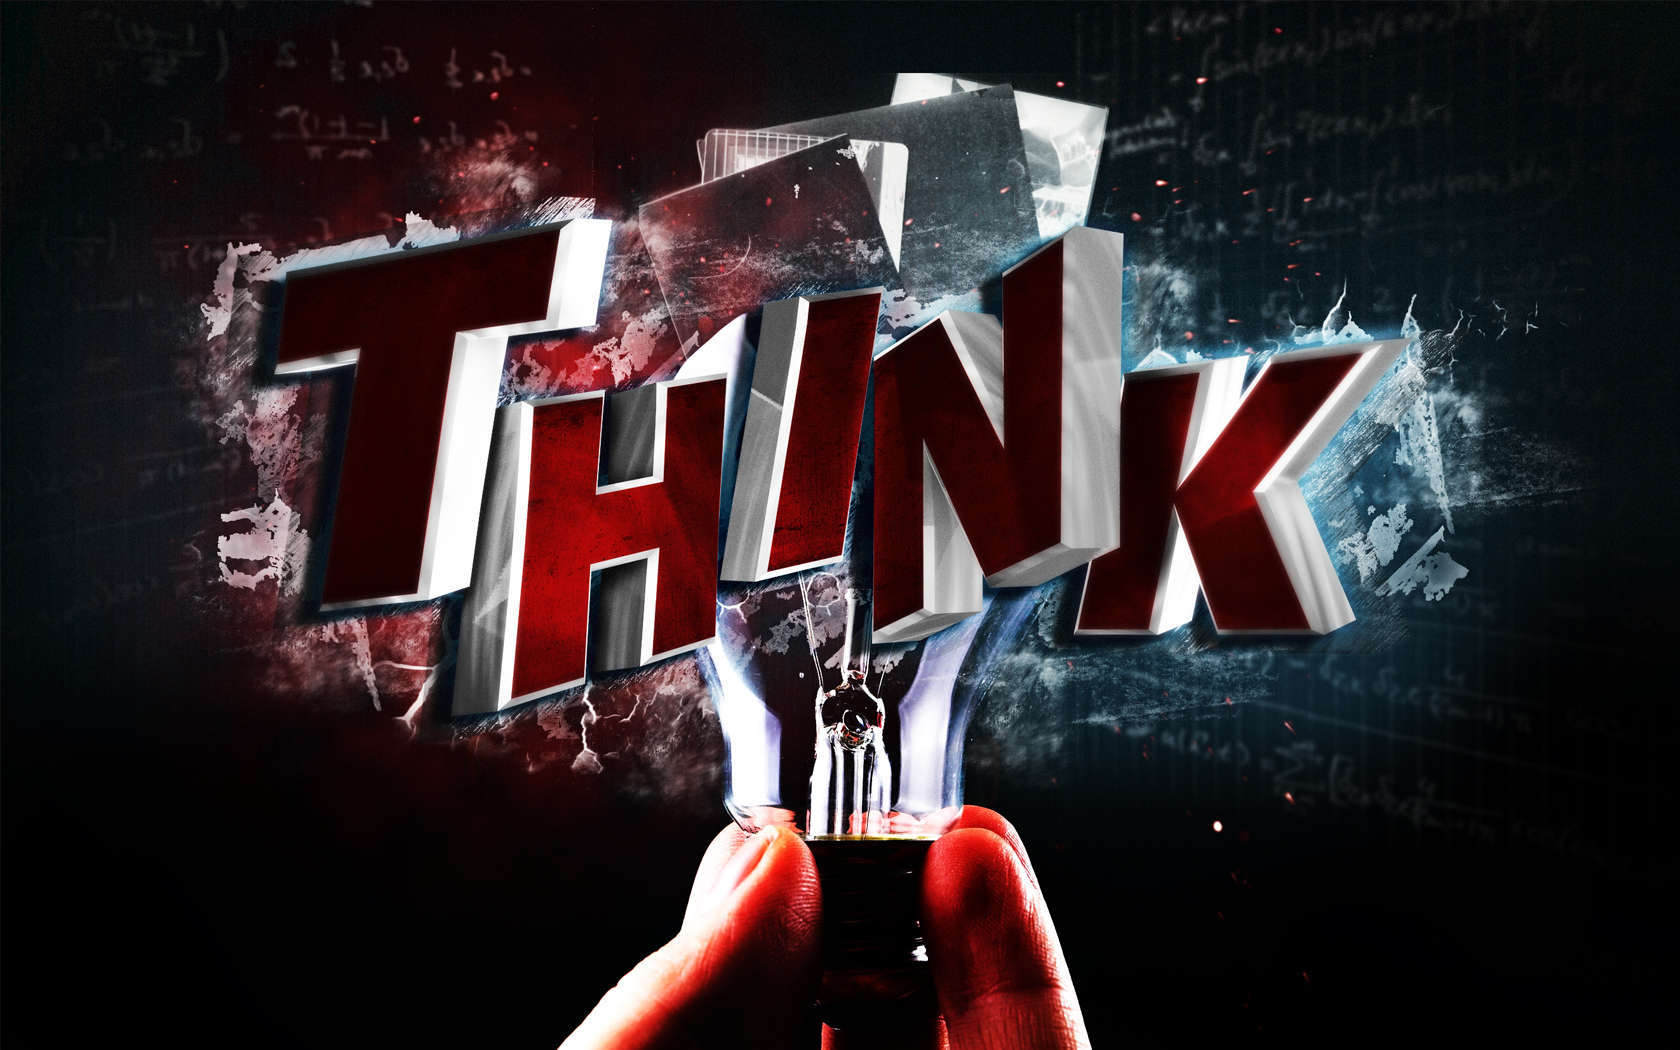 Cool-Think-for-Yourself-wallpaper-wp4604986-1